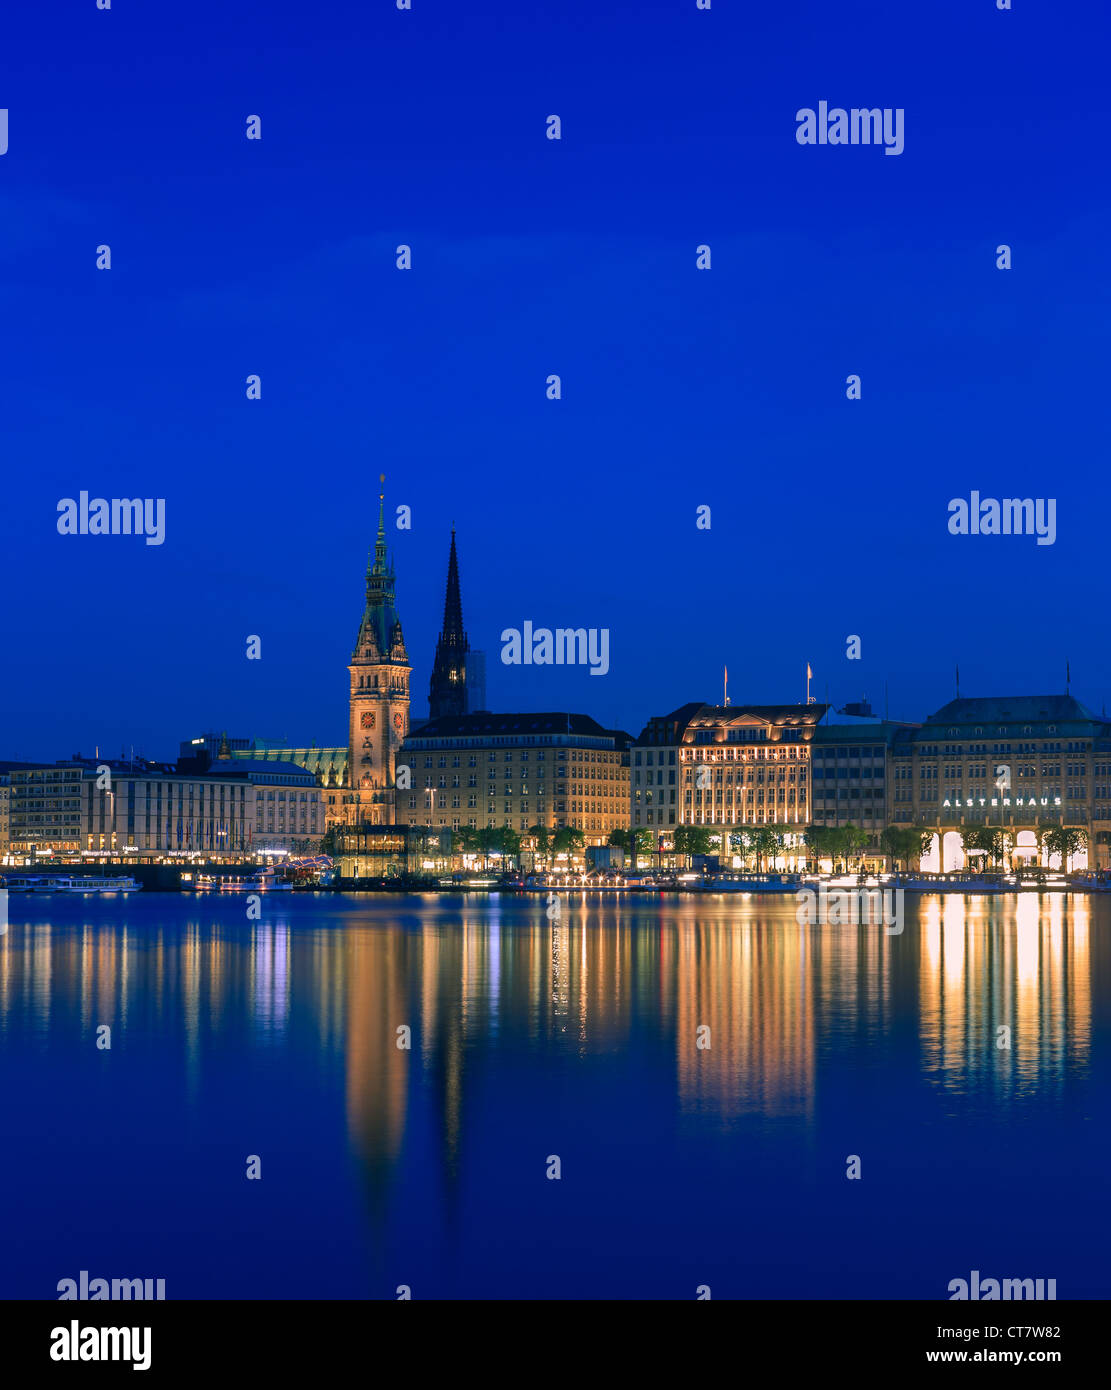 Hamburg skyline taken right after sunset at the blue hour over the binnen Alster. - Stock Image